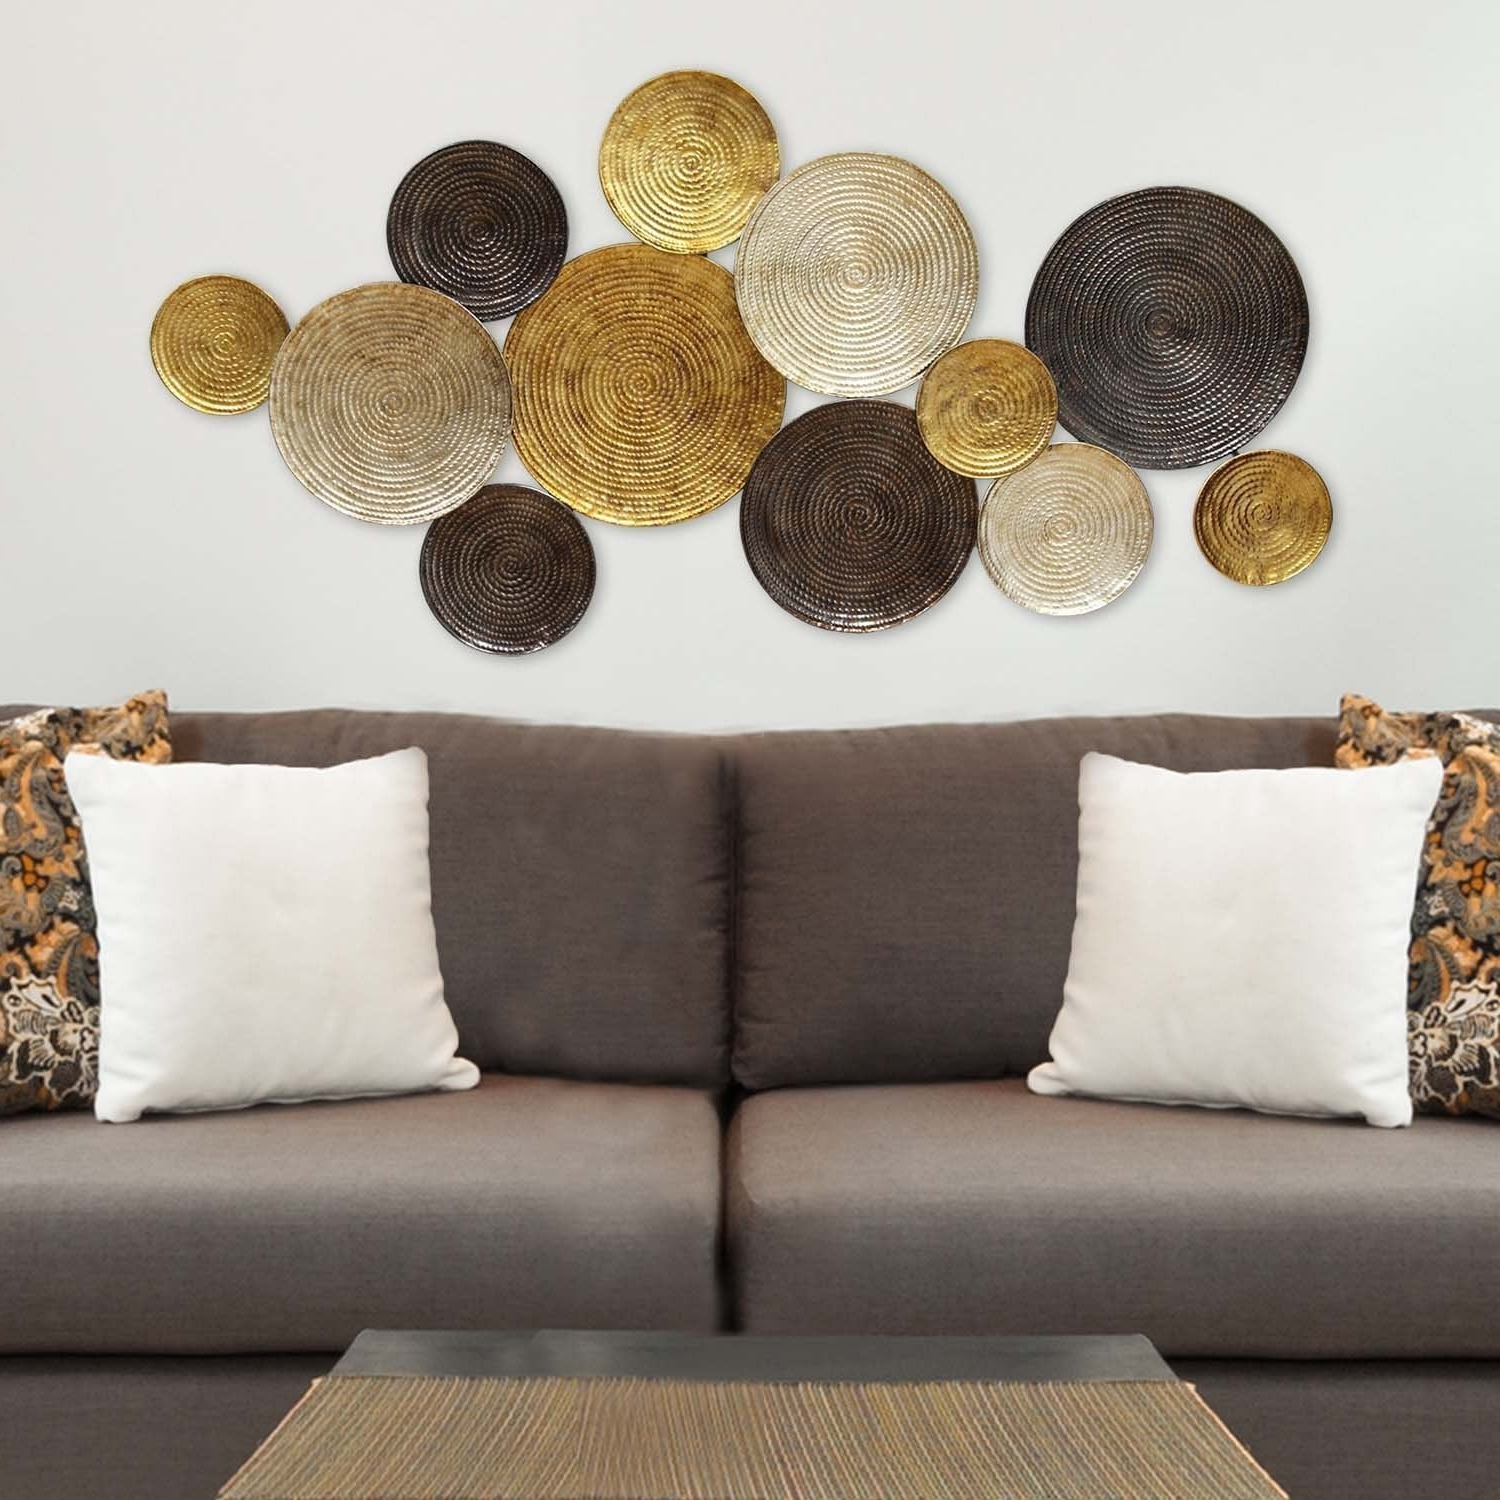 Current Stratton Home Decor Multi Circles Wall Decor Within Rings Wall Décor By Stratton Home Decor (View 16 of 20)